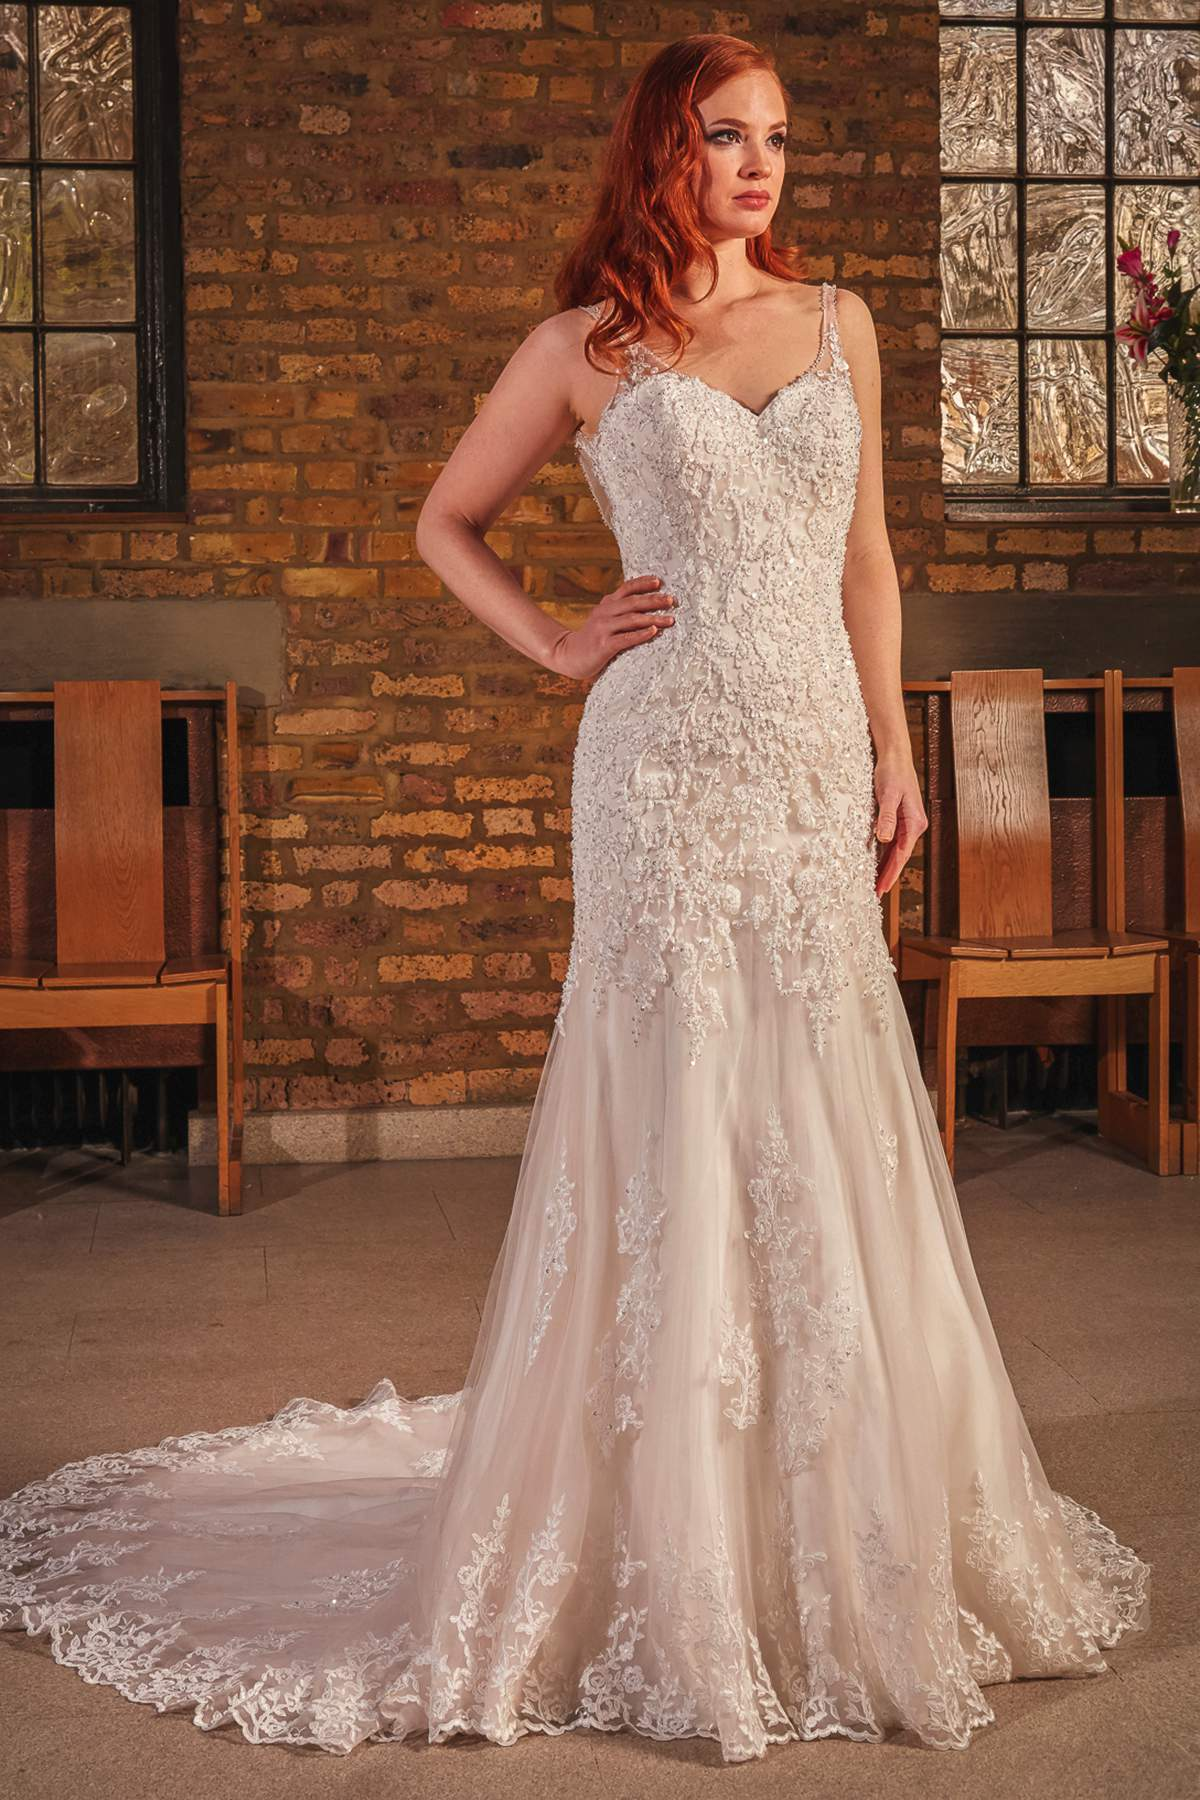 Style 1700807 by LQ Designs - Find Your Dream Dress